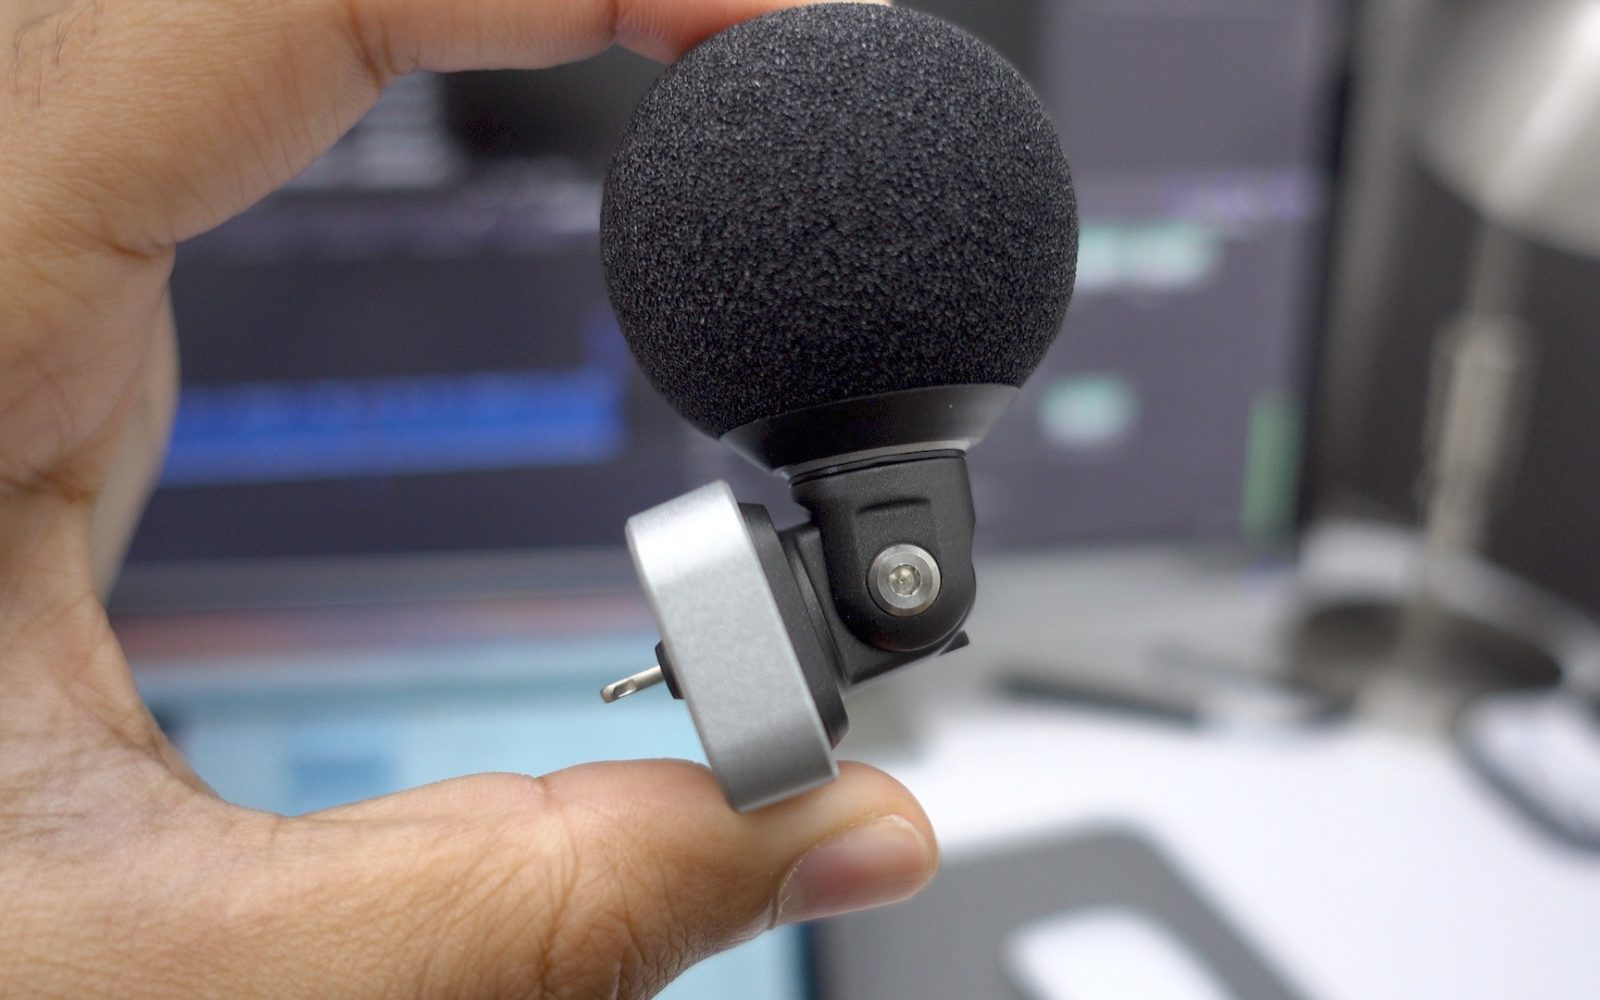 Shure MV88: a solid Lightning-enabled microphone for on-the